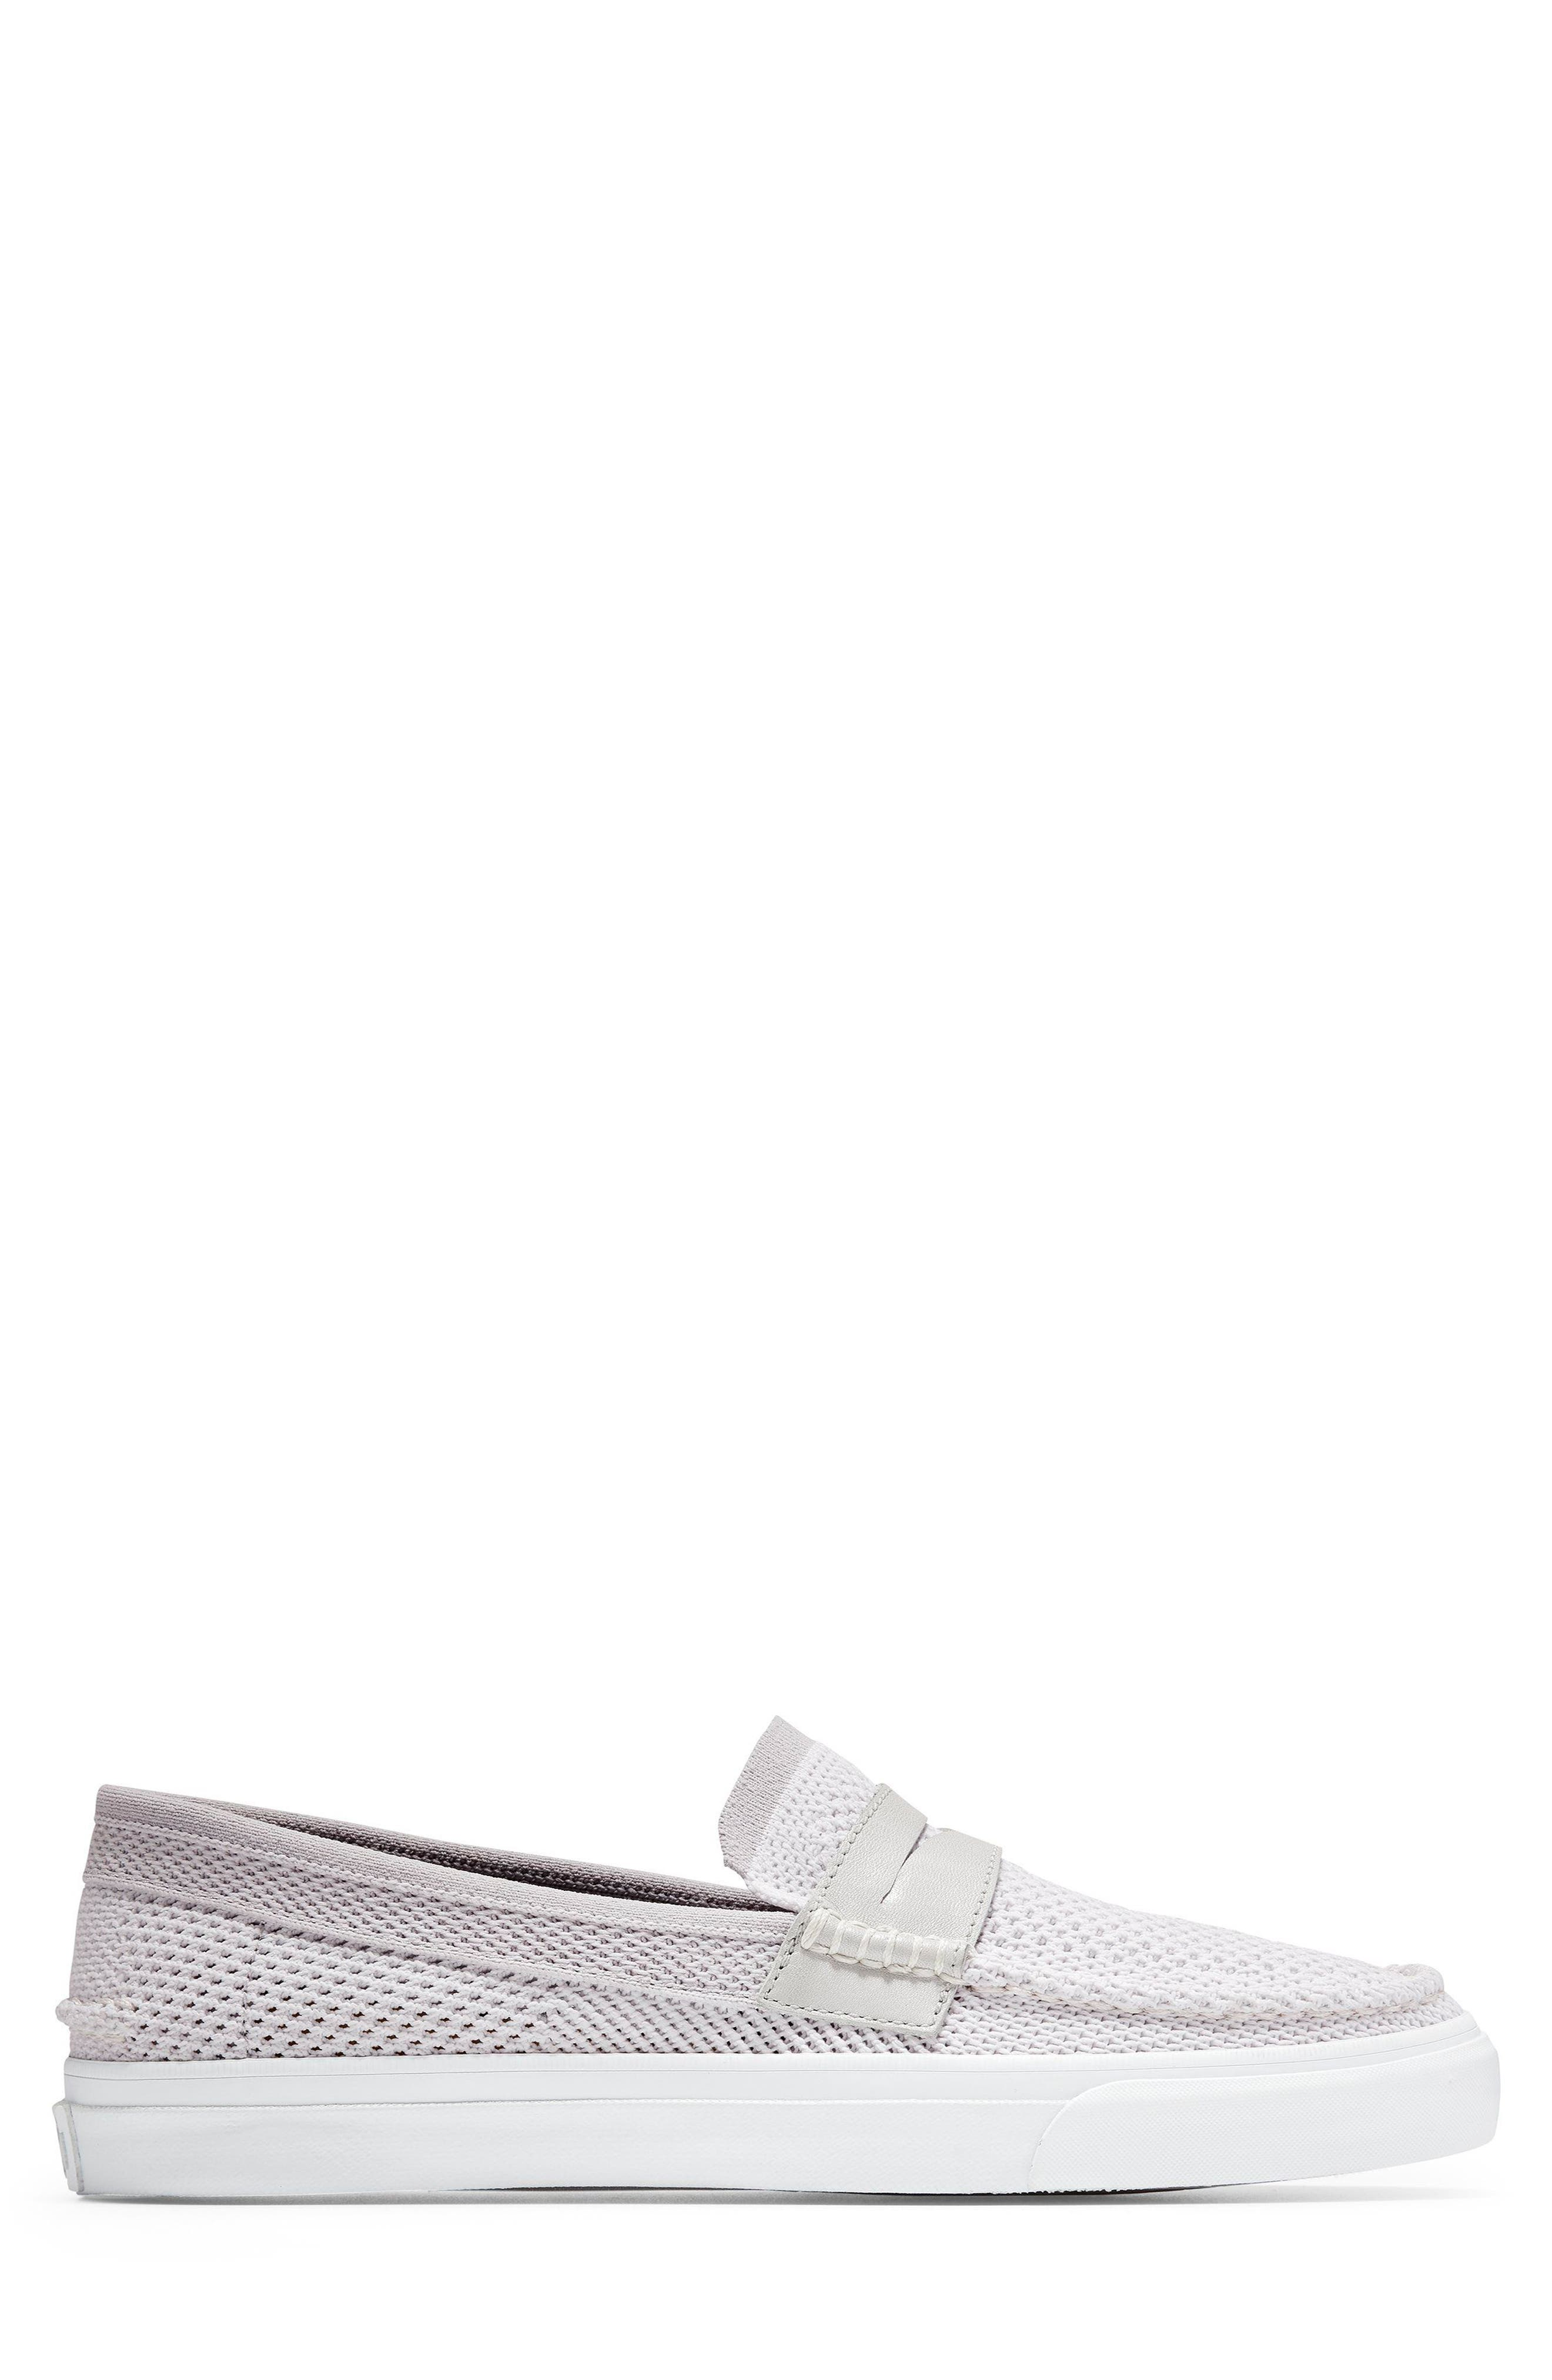 Pinch Stitch LX Stitchlite<sup>™</sup> Penny Loafer,                             Alternate thumbnail 3, color,                             VAPOR GREY /OPTIC WHITE